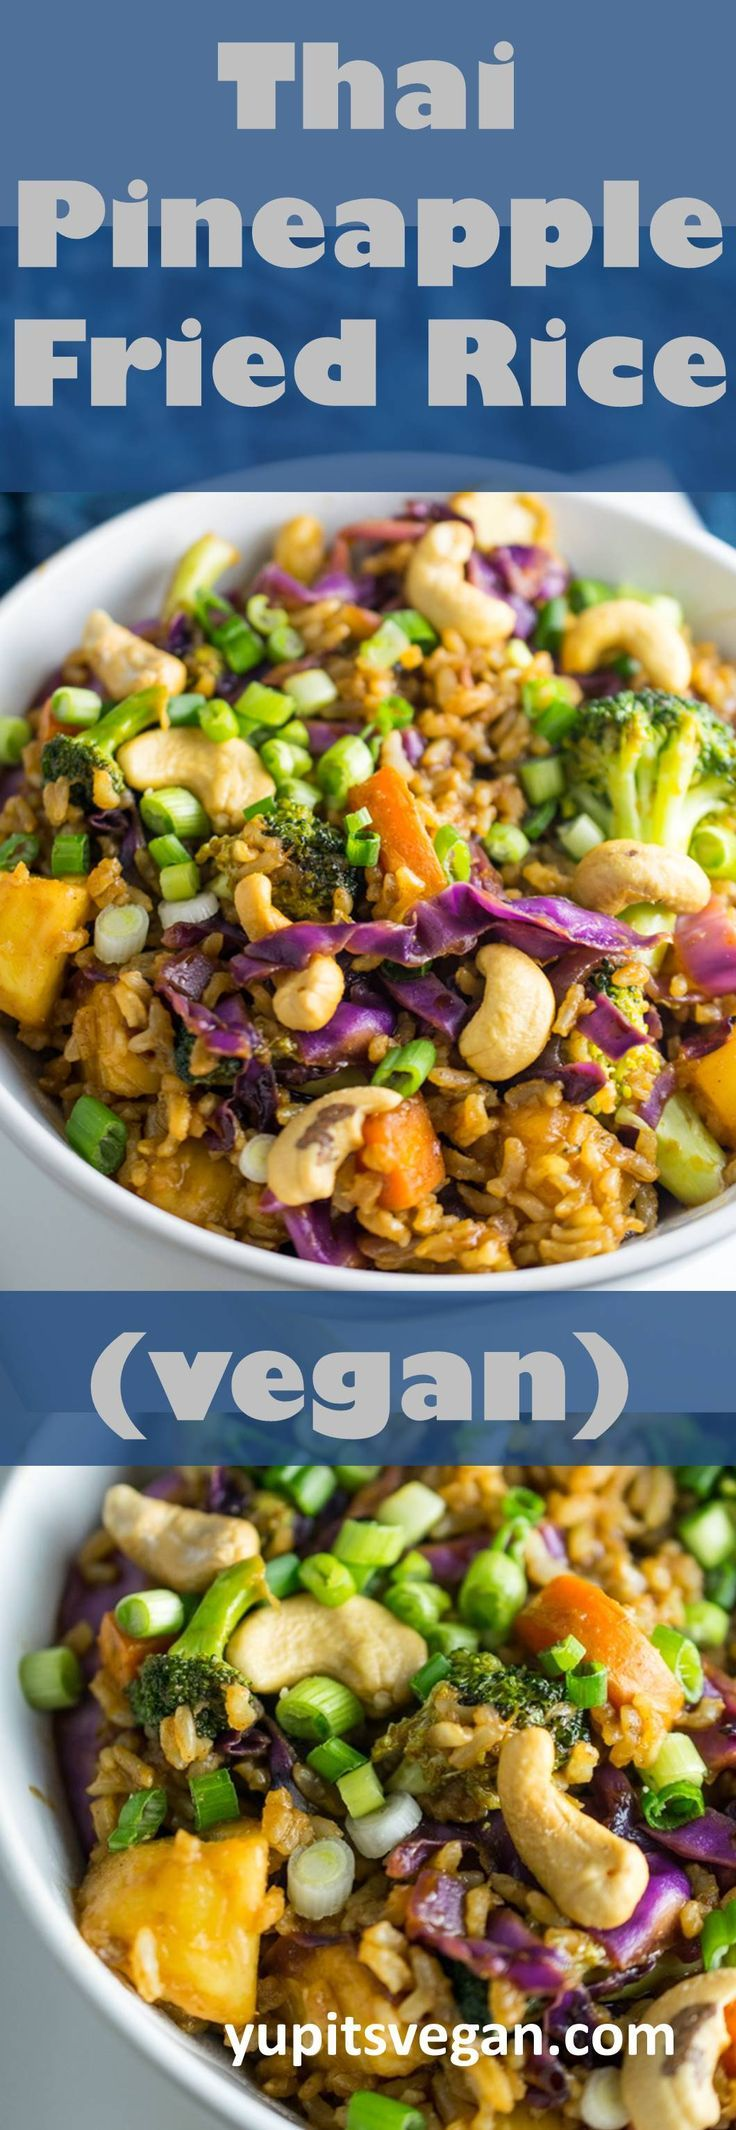 Thai Pineapple Fried Rice | Yup, it's Vegan. Veggie-packed fried rice seasoned with a sweet and savory Thai-inspired sauce. #Glutenfree #Vegan and ready in 30 minutes.